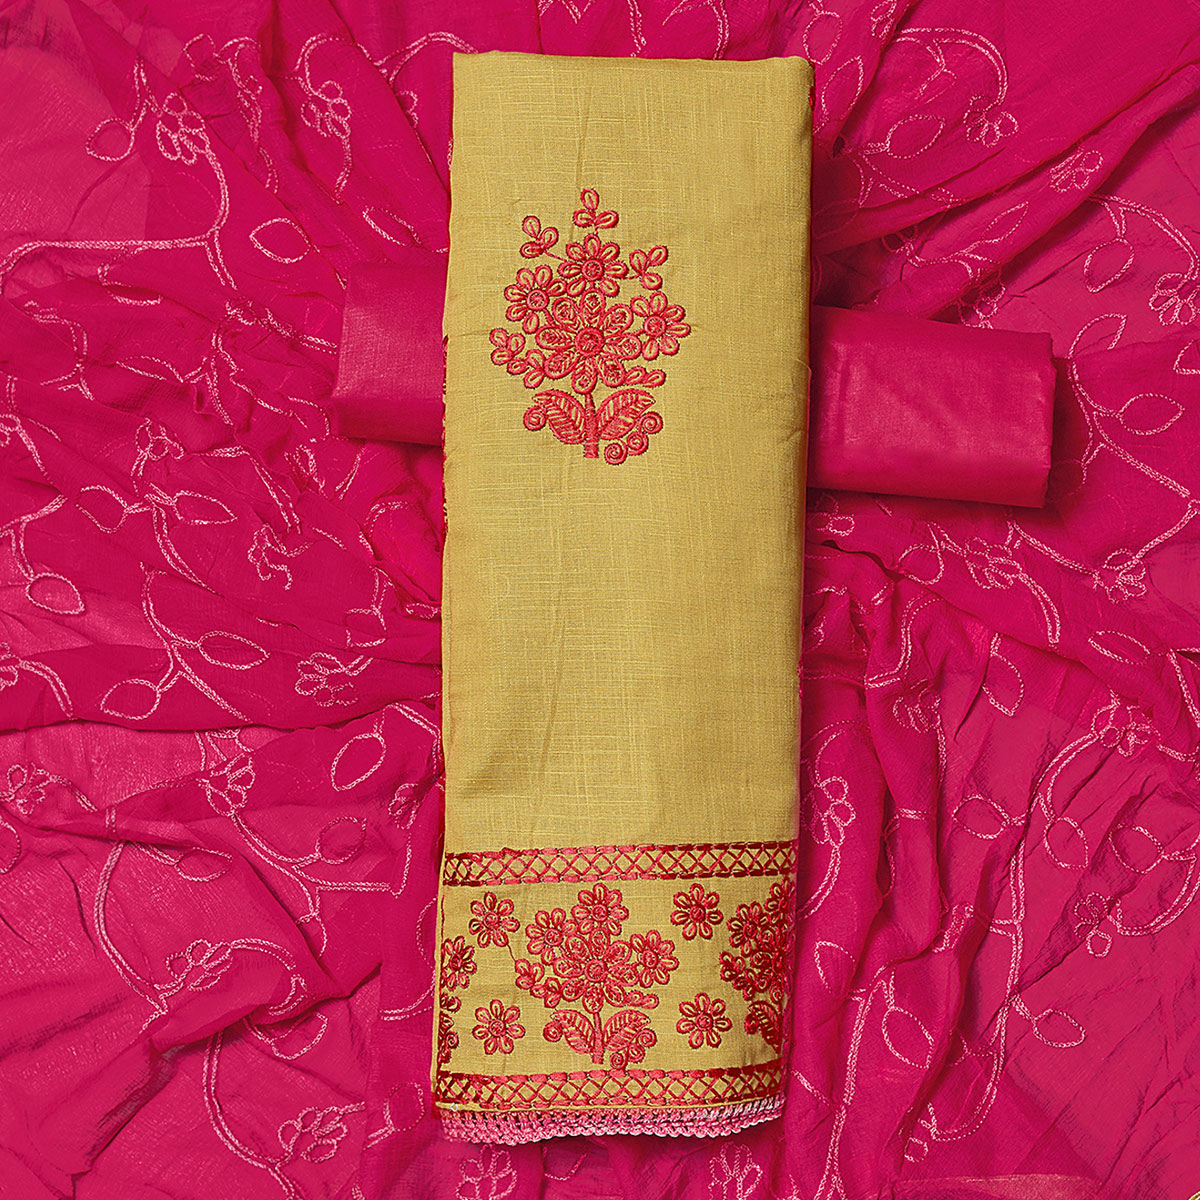 Pleasant Beige-Pink Colored Partywear Embroidered Cotton Dress Material